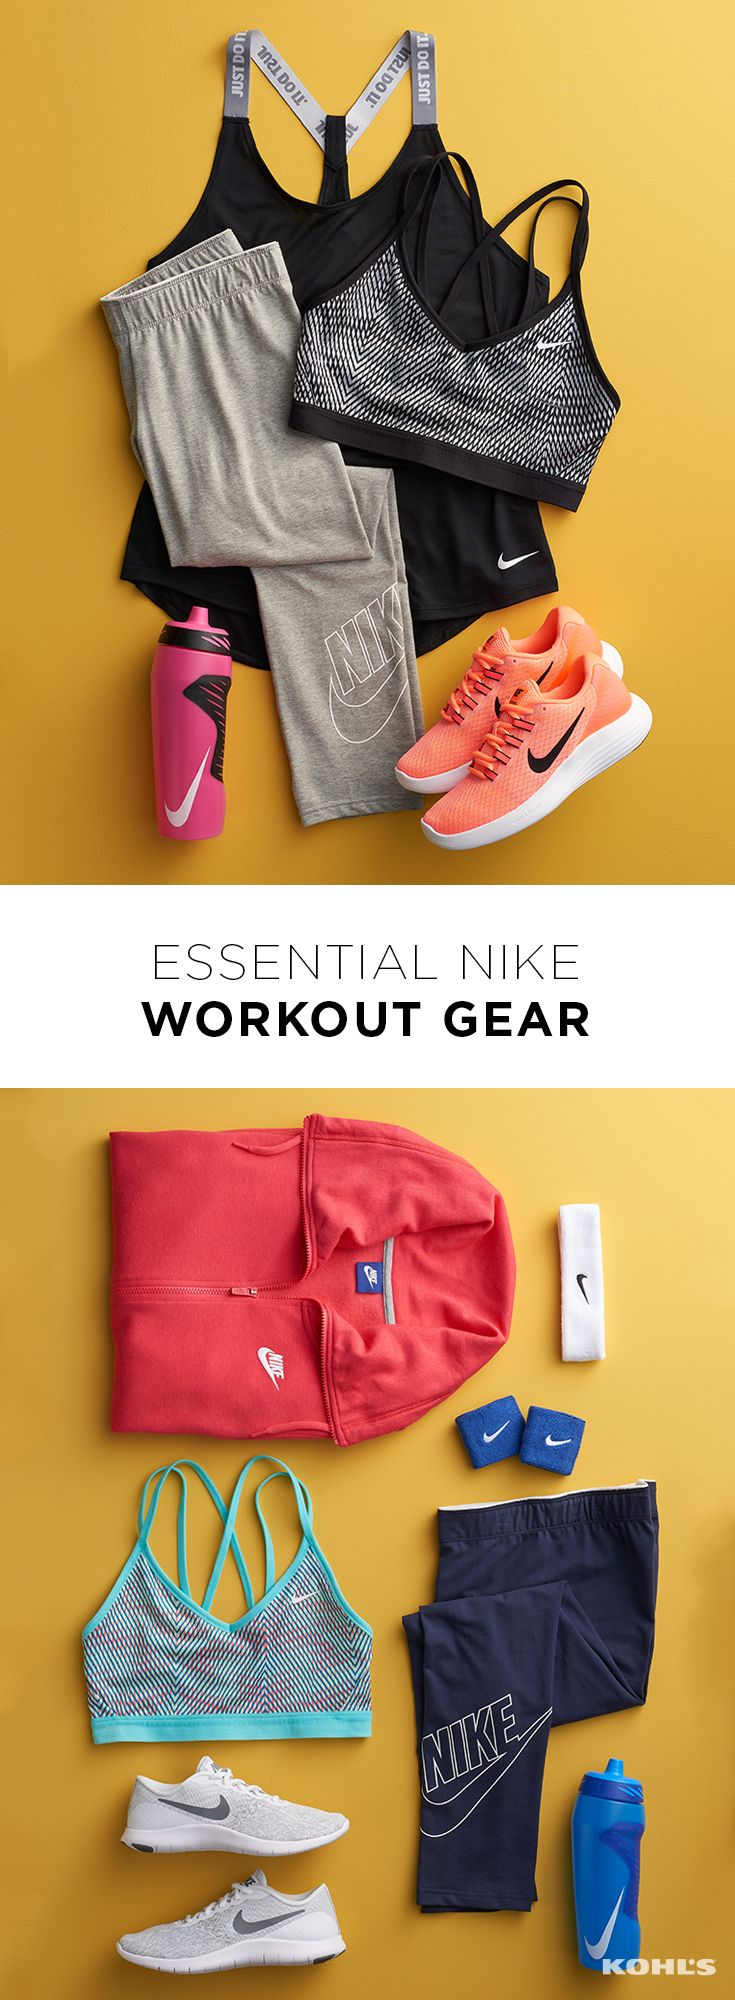 Workout fads come and go but some things remain essential. You can do almost any workout (or, let's be honest, just relax on the couch) with a supportive sports bra, wicking tank top, leggings and your trusty running shoes. Best of all, they're all available (and perfectly coordinating!) from Nike. Get healthy with Kohl's.